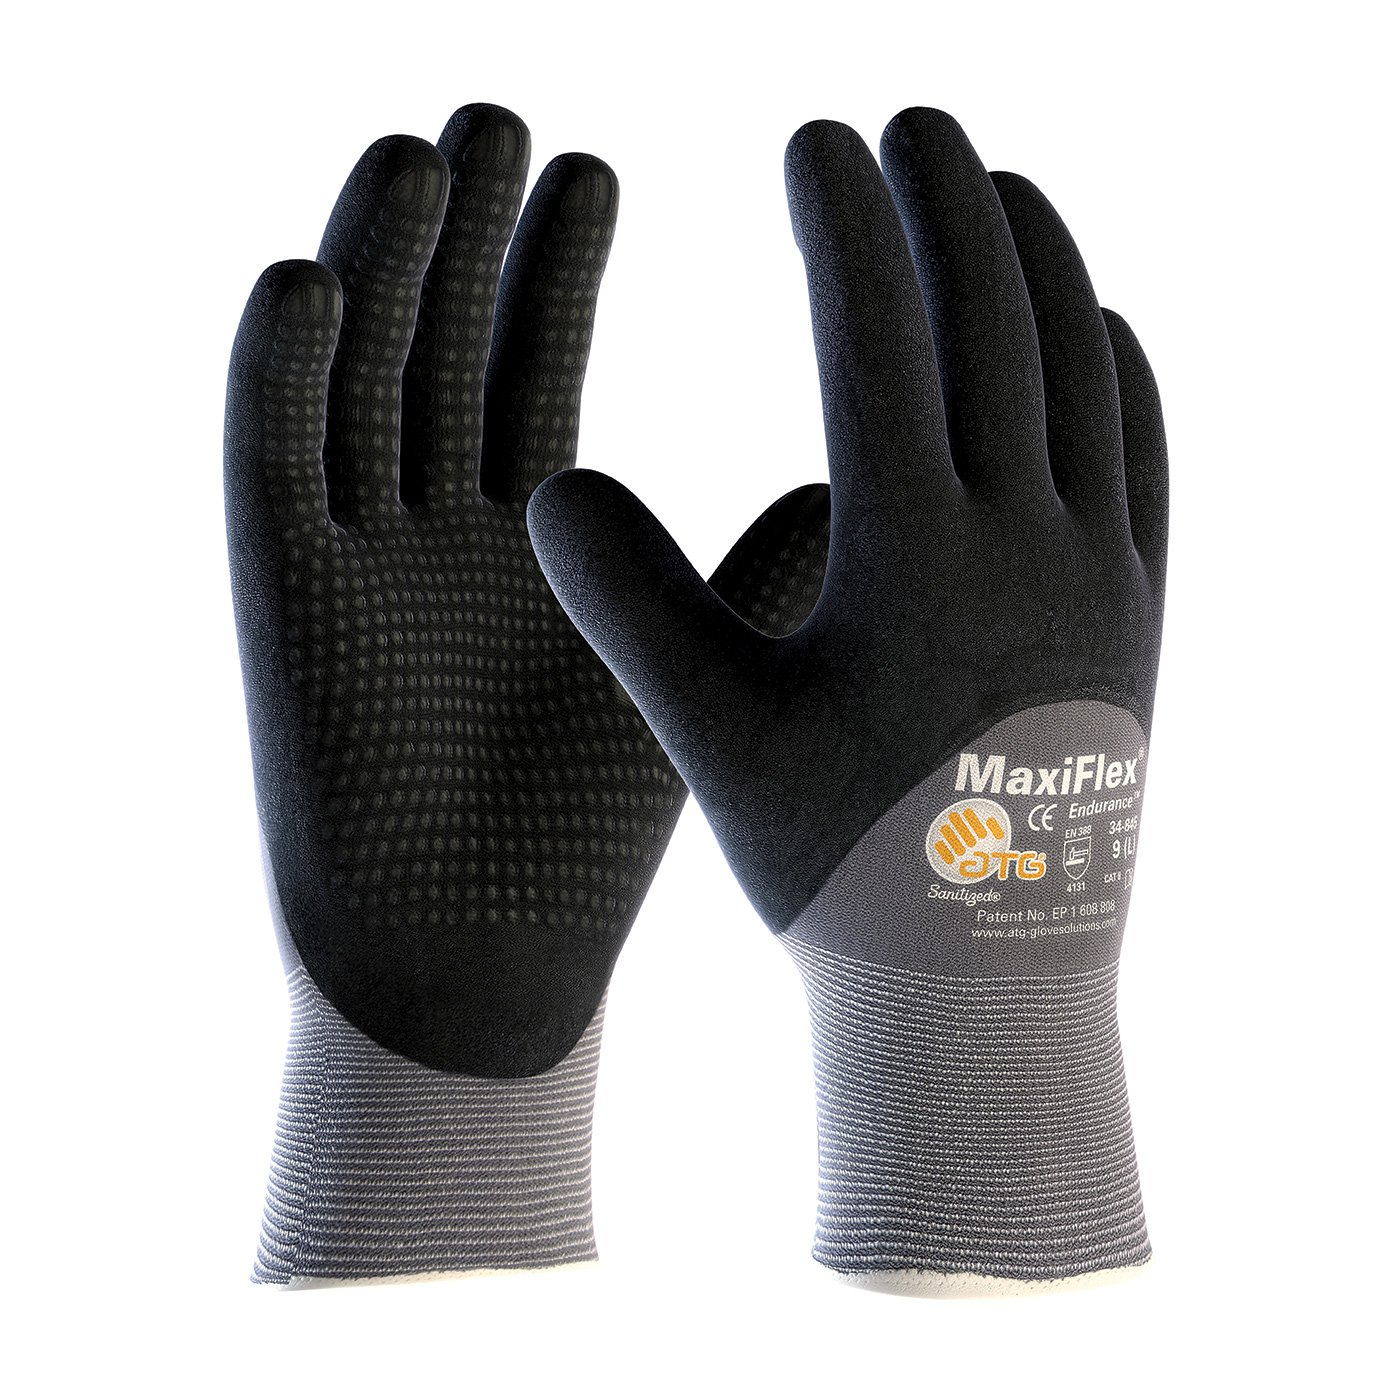 ATG 34-845/L MaxiFlex Endurance - Nylon, Micro-Foam Nitrile 3/4 Grip Gloves - Black/Gray - Large - 36 Pair Per Pack